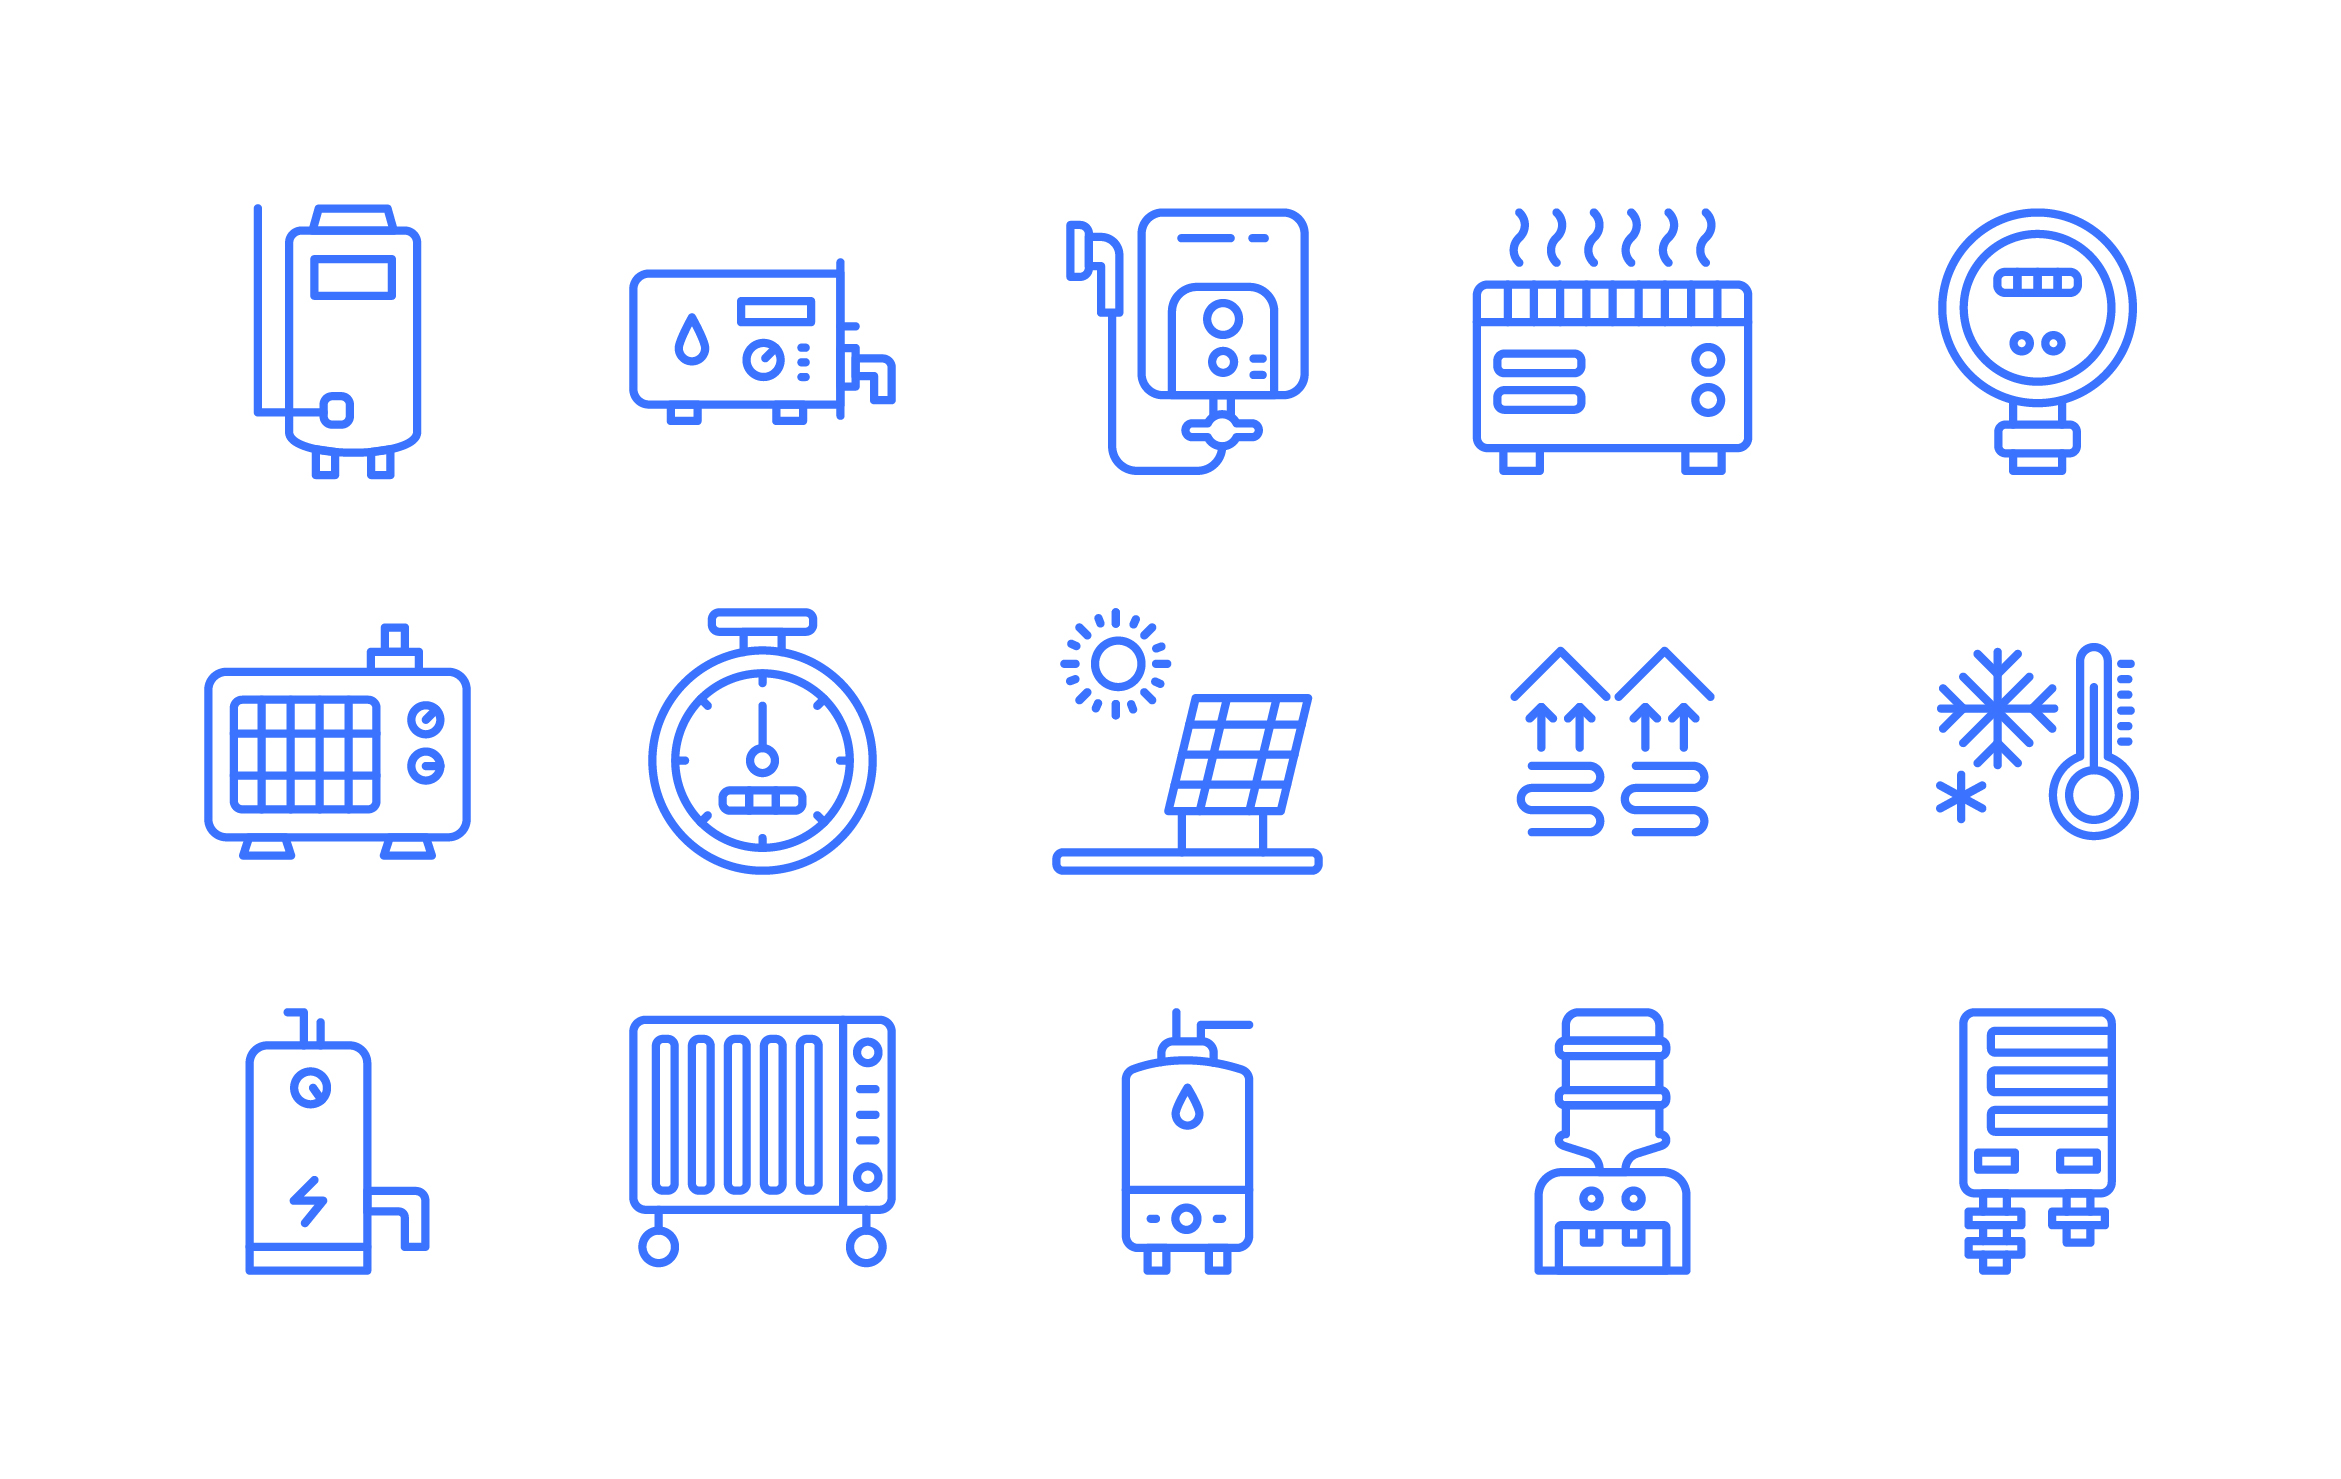 House Heating Equipment Line Icons